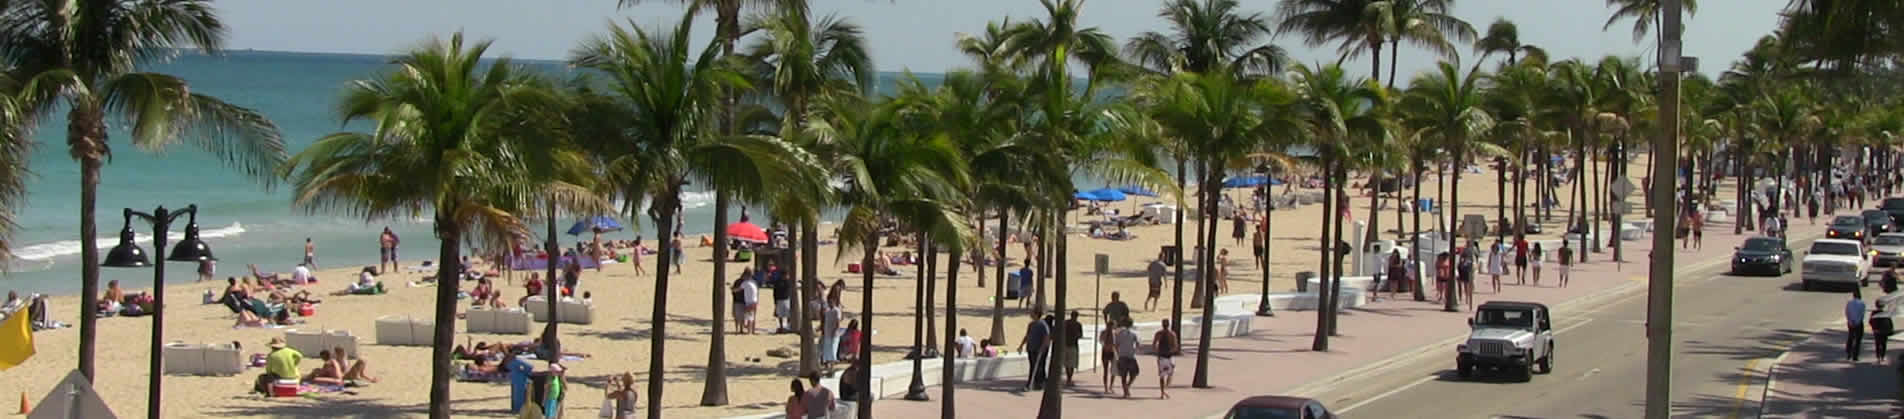 https://fortlauderdaleairportfll.com/wp-content/uploads/2016/10/visit-warm-beaches-fort-lauderdale.jpg